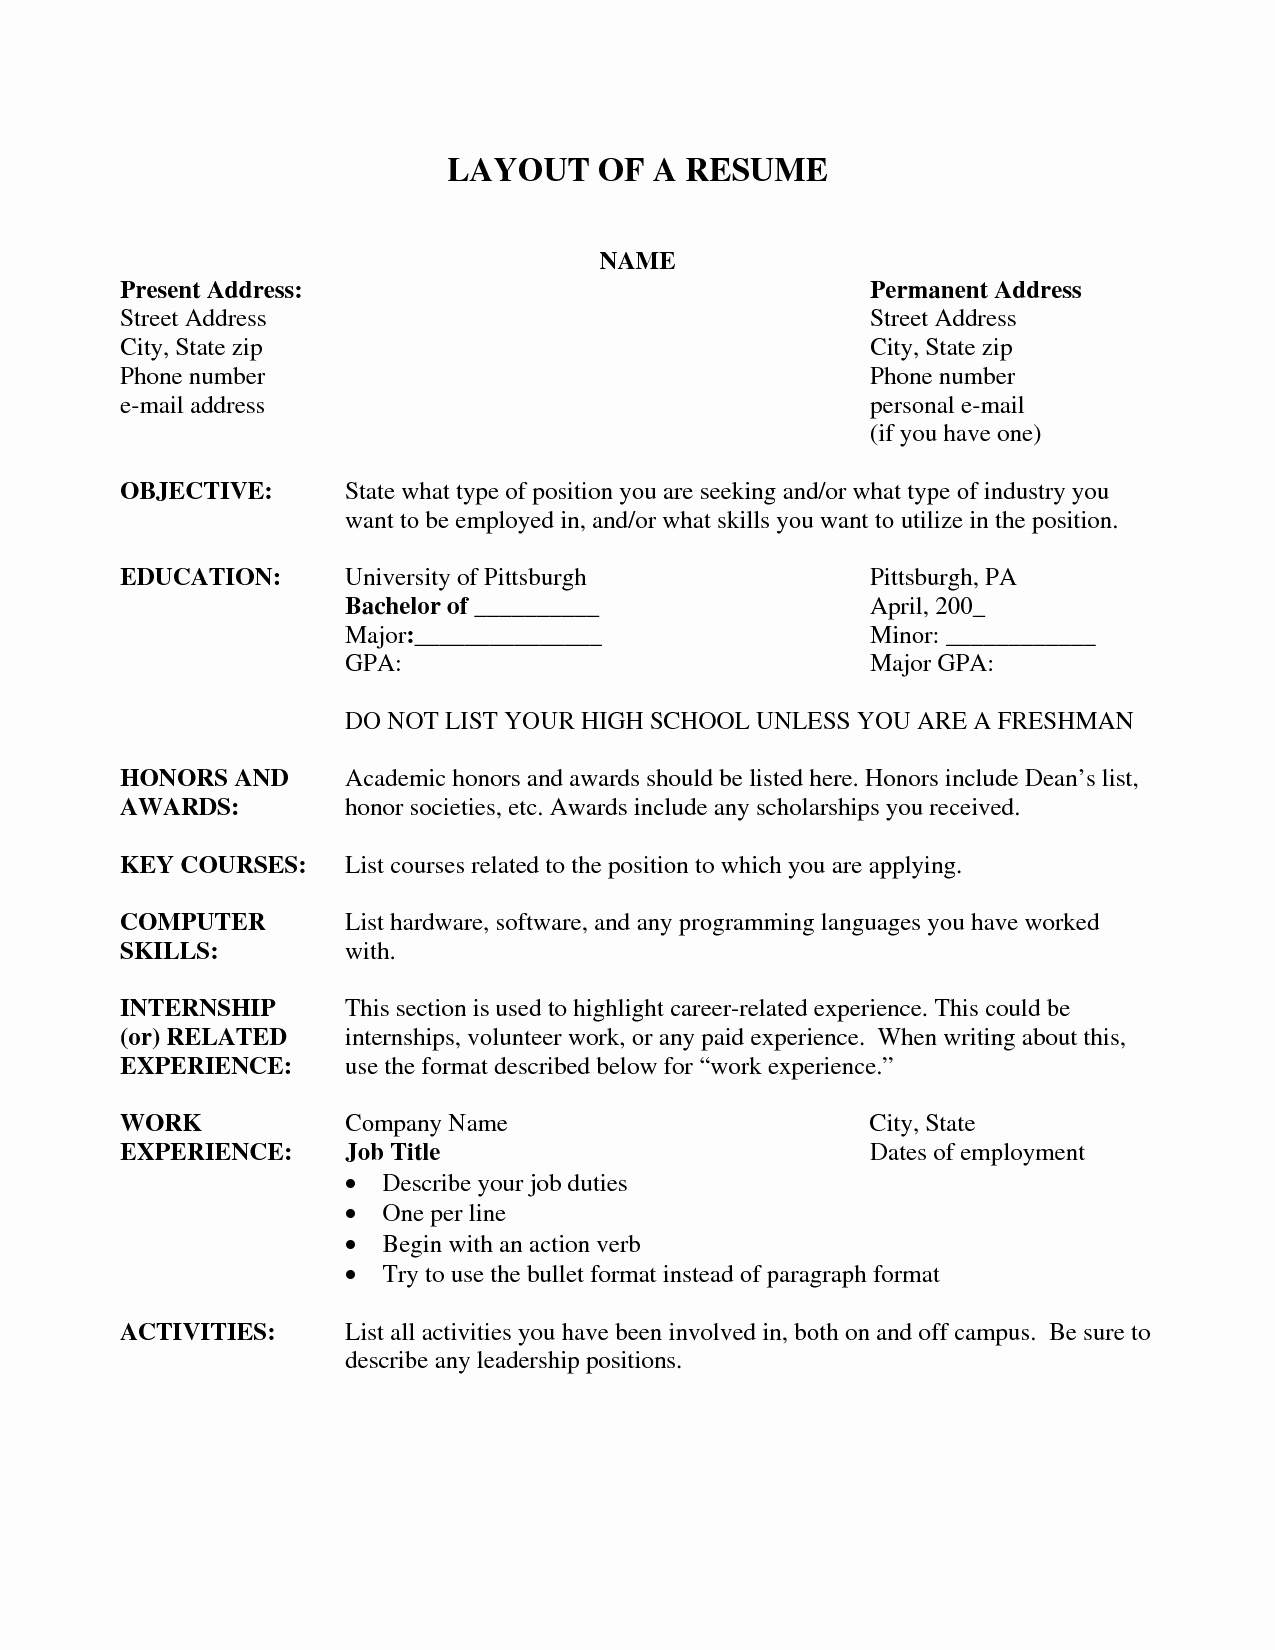 A Template for A Resume Beautiful Resume Layout Resume Cv Example Template